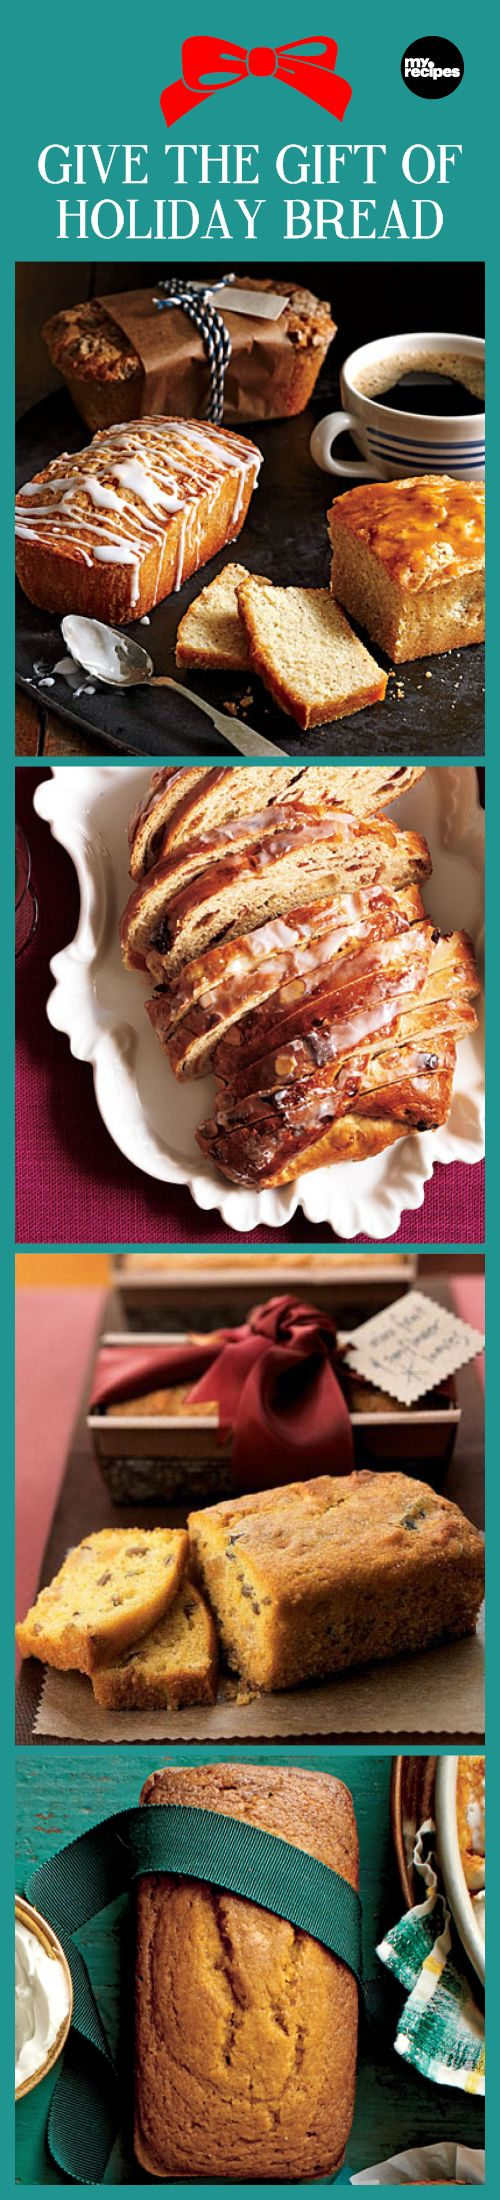 Give the Gift of Holiday Bread | MyRecipes  From rum-laced banana bread to mini cranberry panettone and fruit-filled stollen, festive breads make perfect holiday gifts.